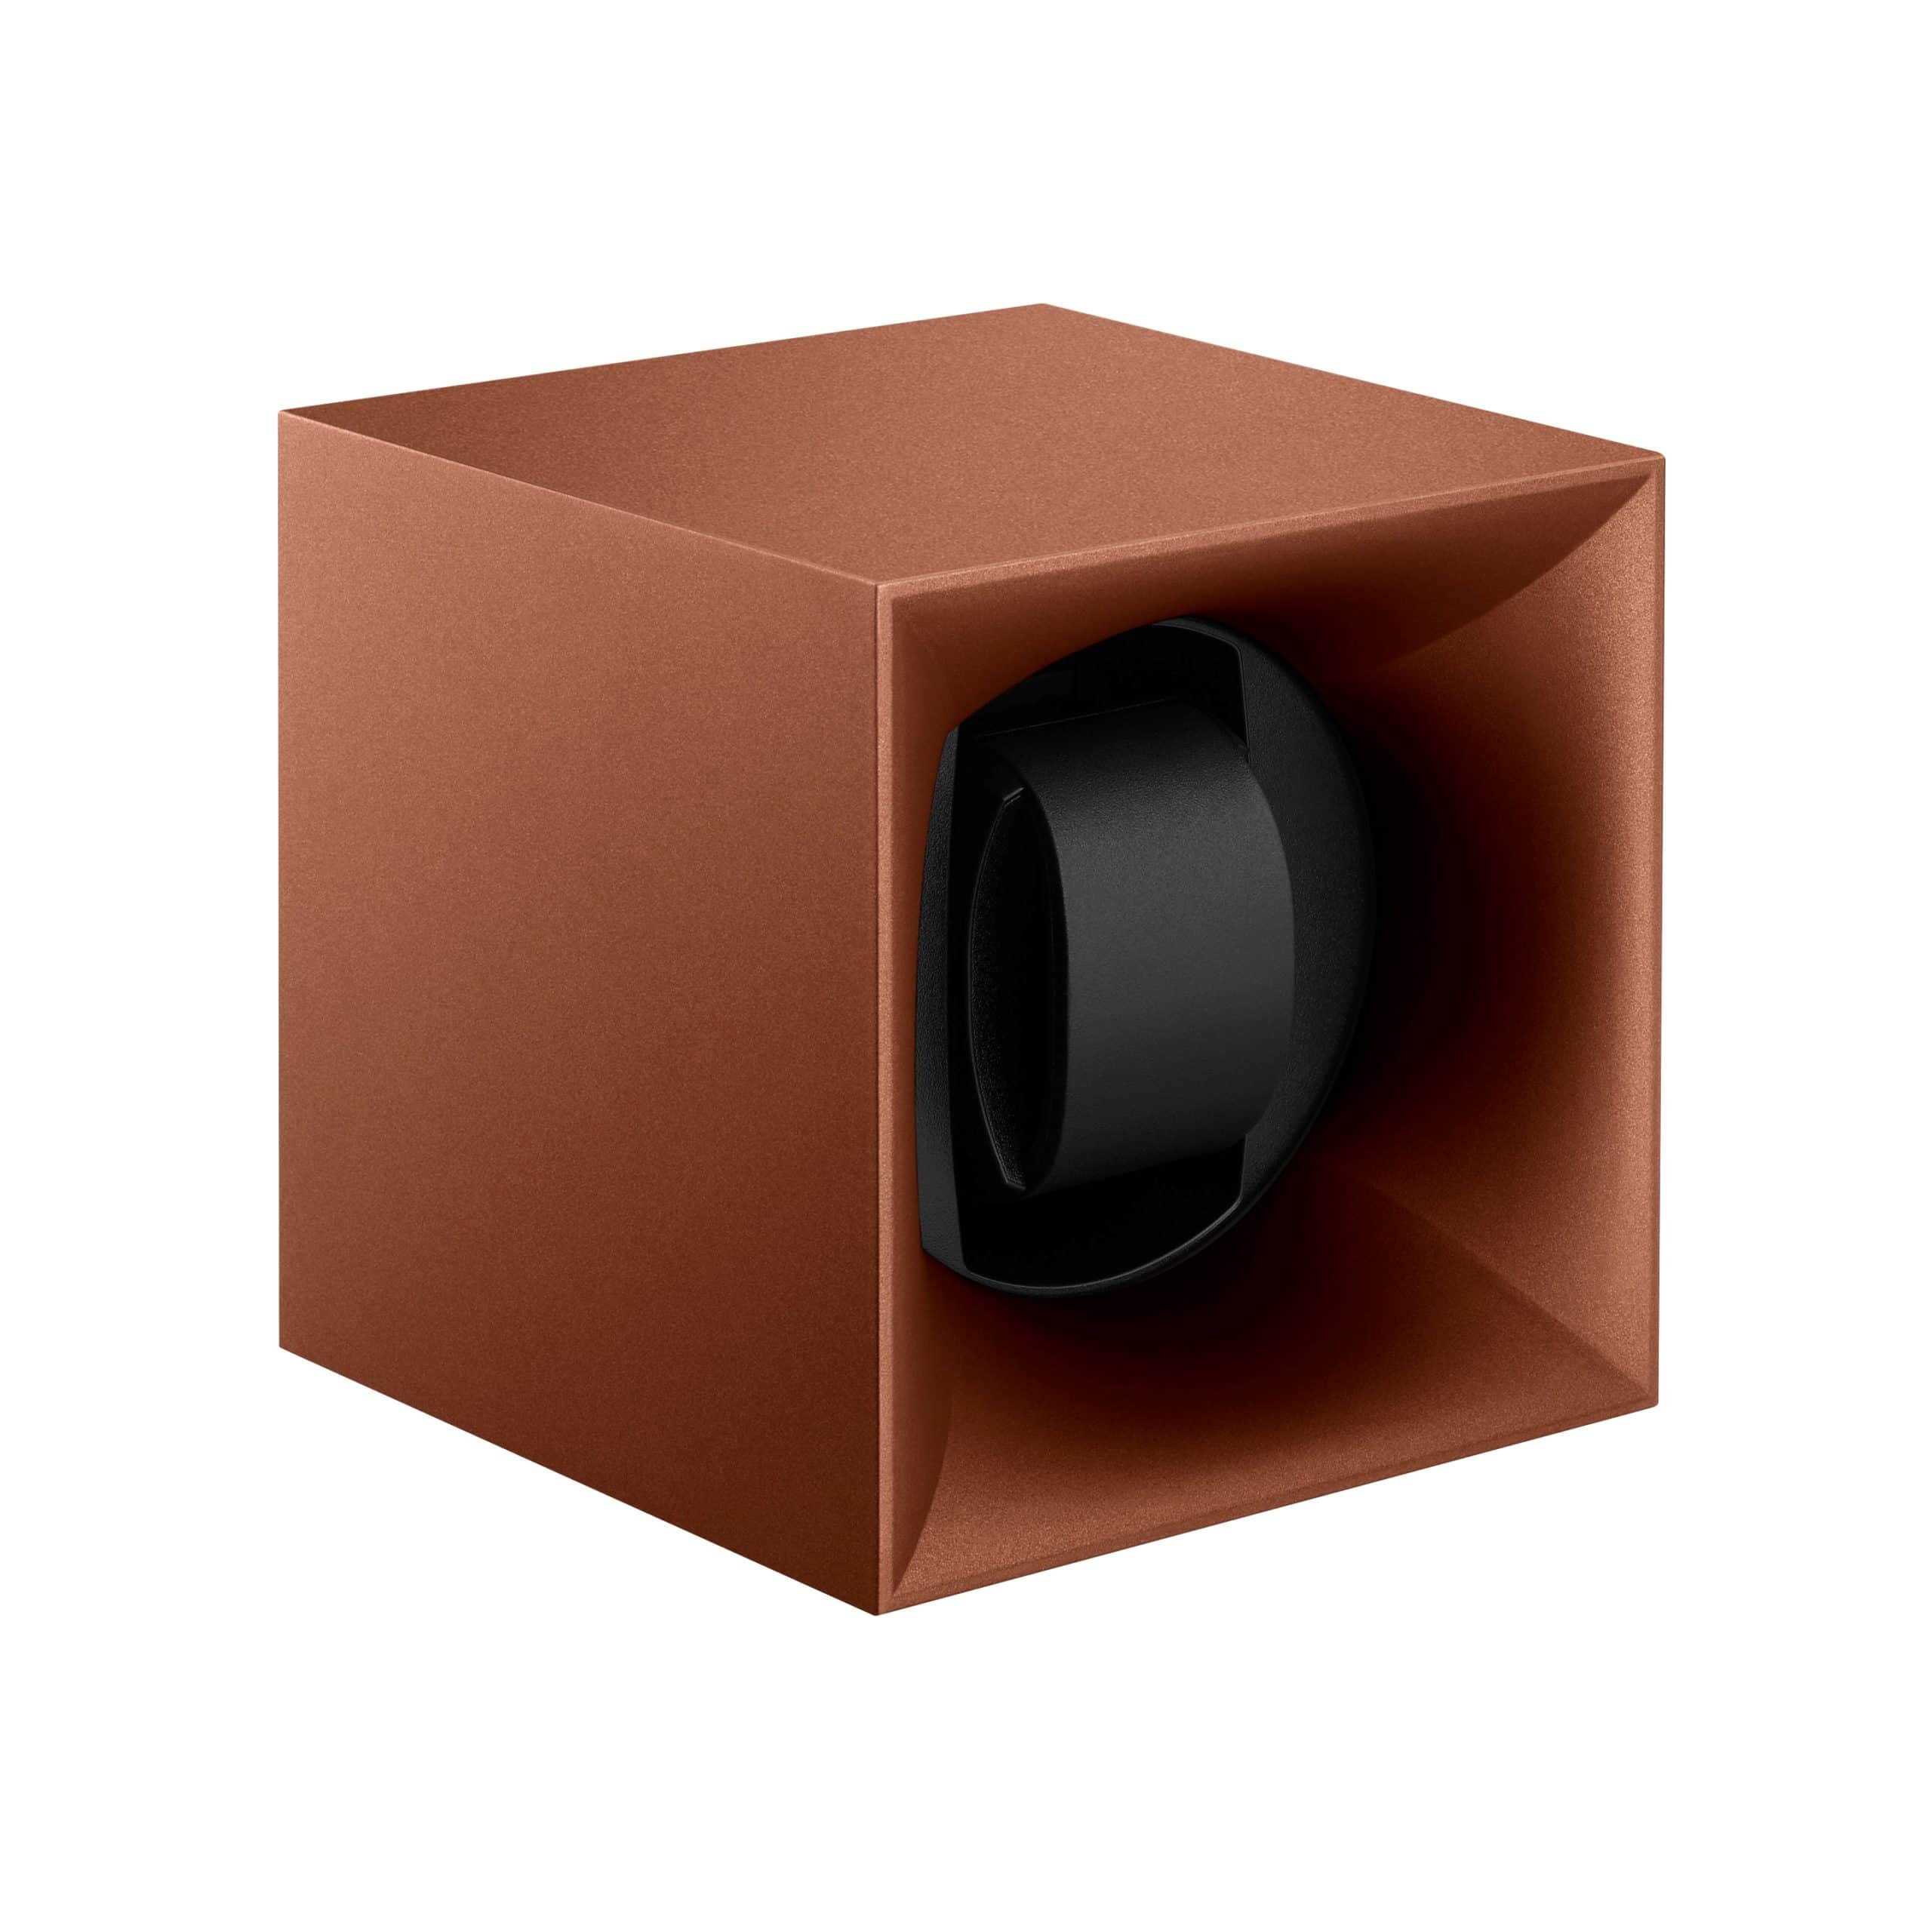 StartBox_Copper_Front_Angle